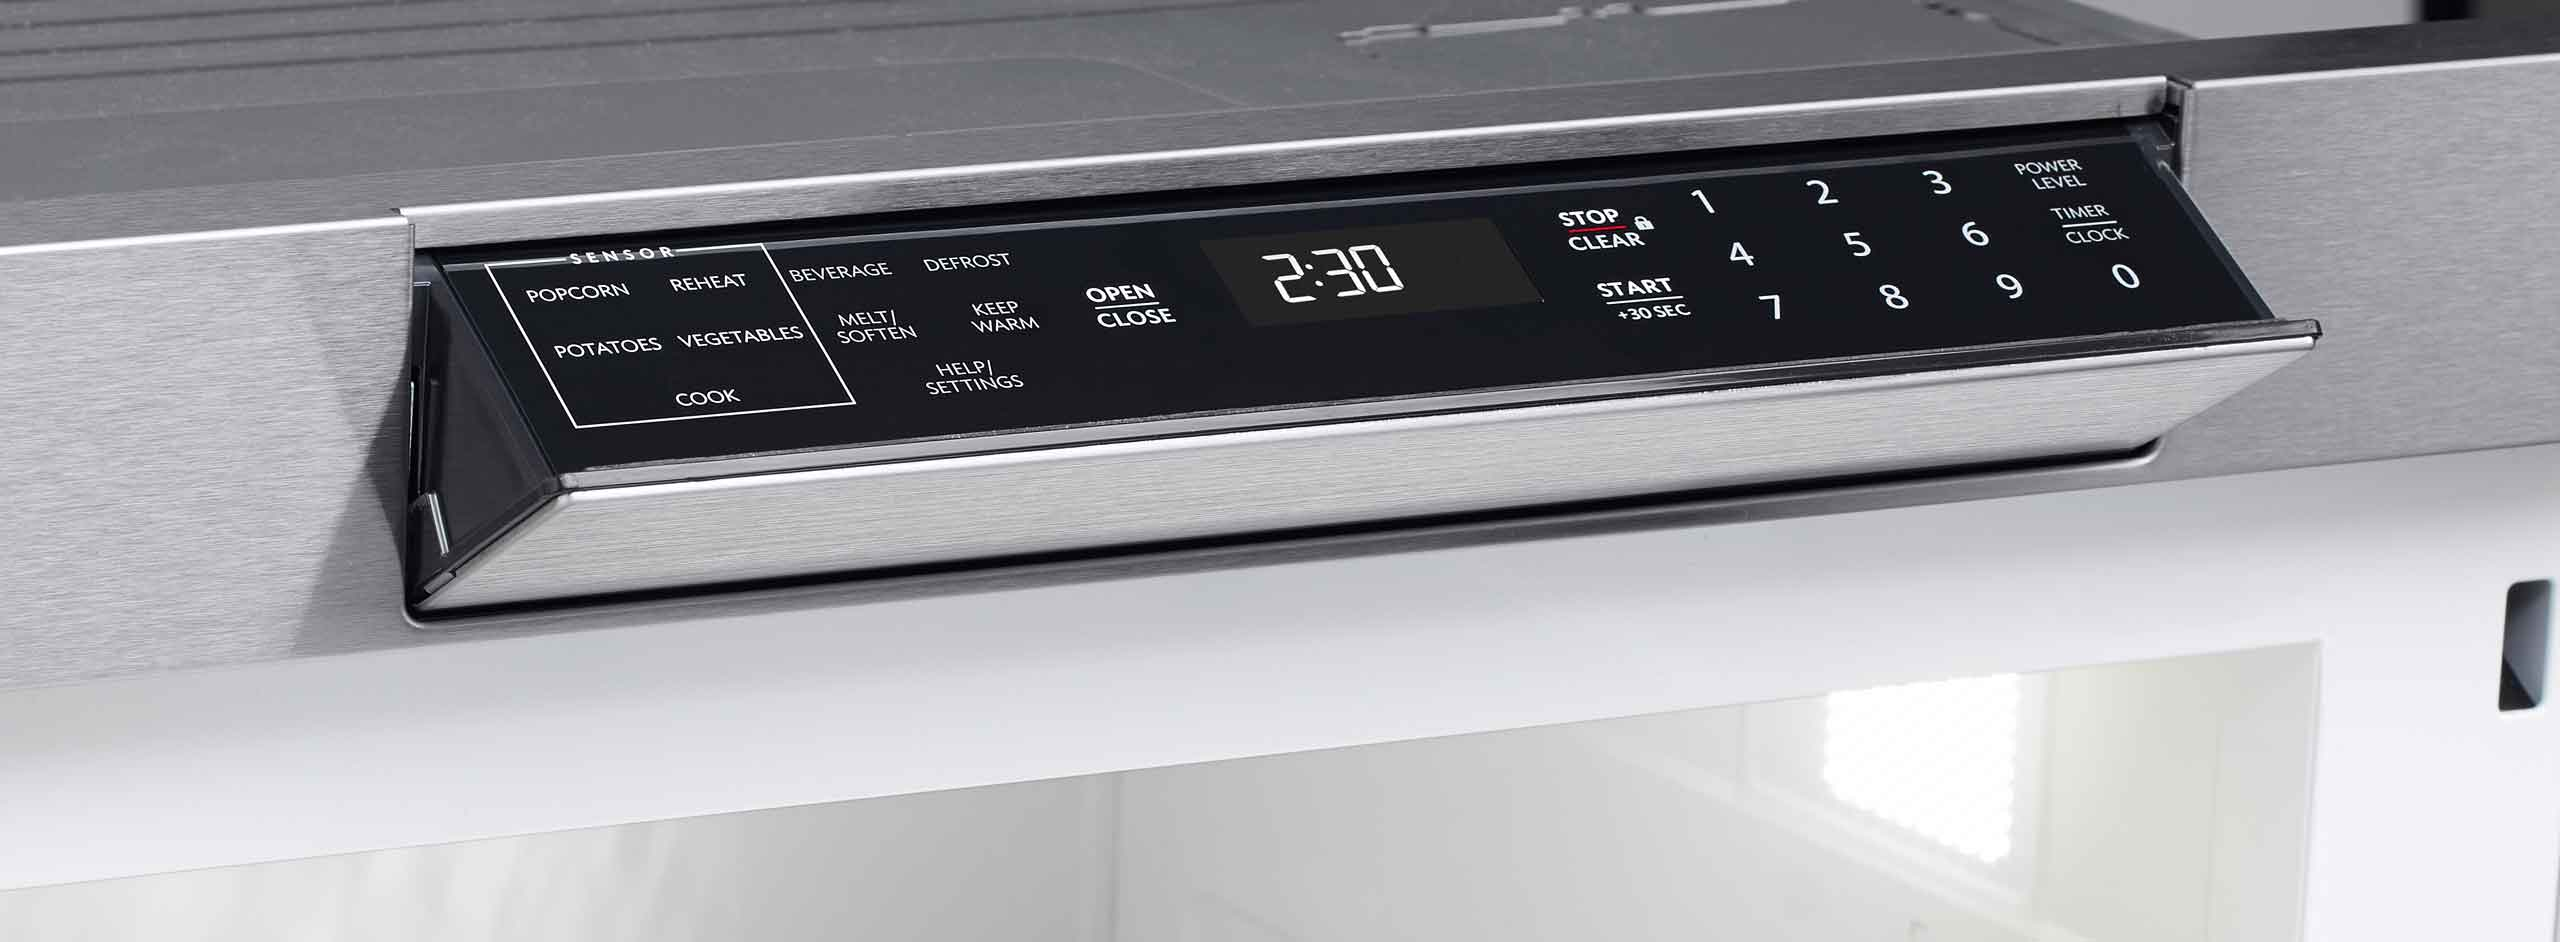 Hidden Control Panel On The Smd3070as 30 Inch Microwave Drawer